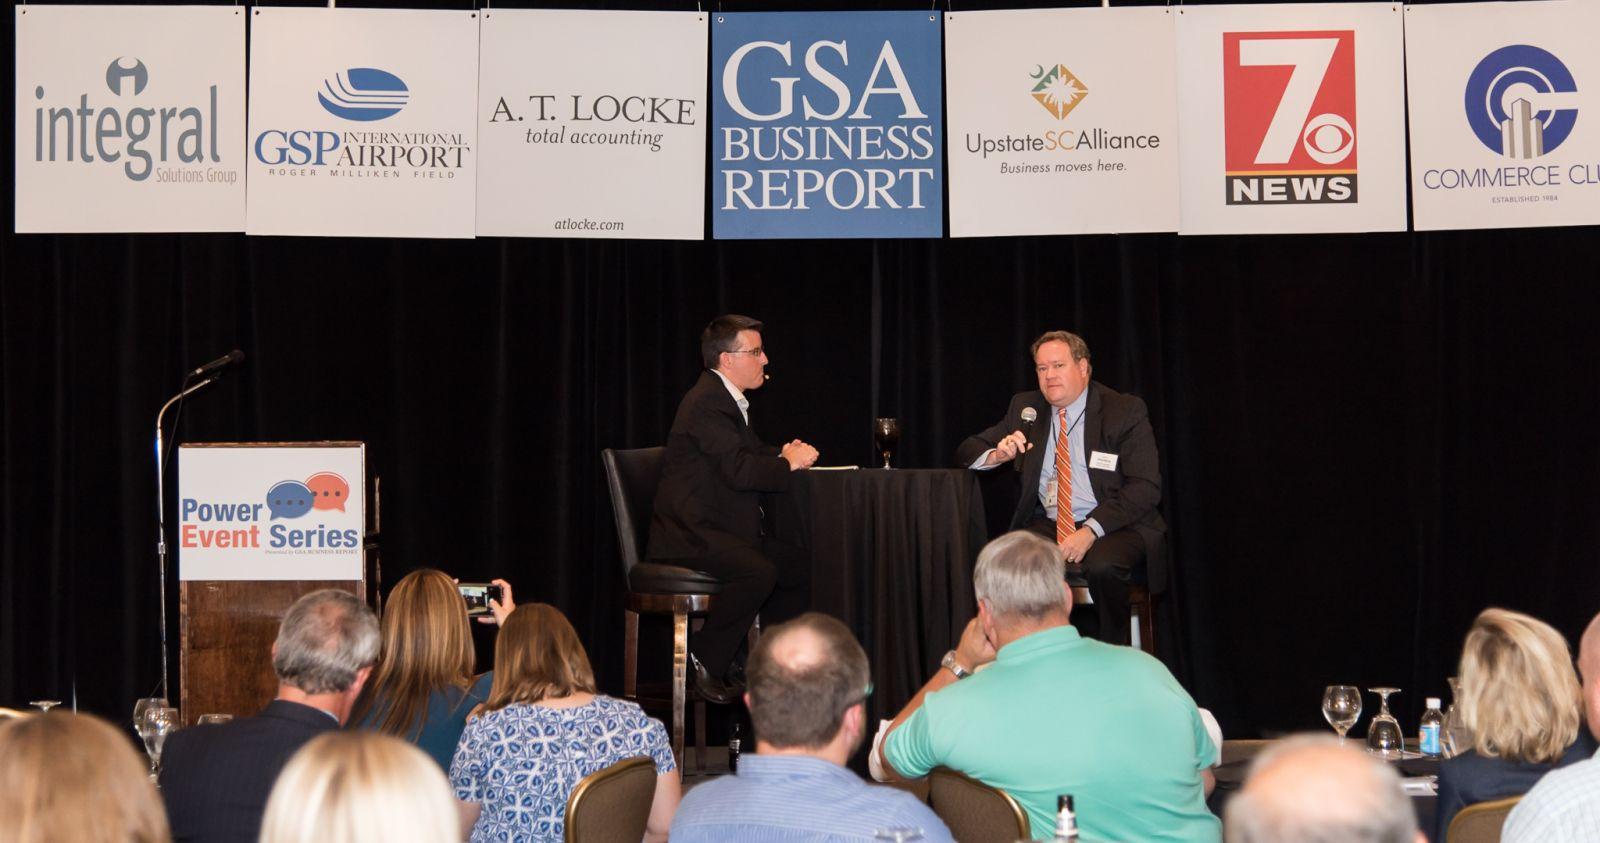 Manufacturers talked about workforce development and other challenges during a GSA Business Report Power Event on Thursday. (Photo/Kathy Allen)